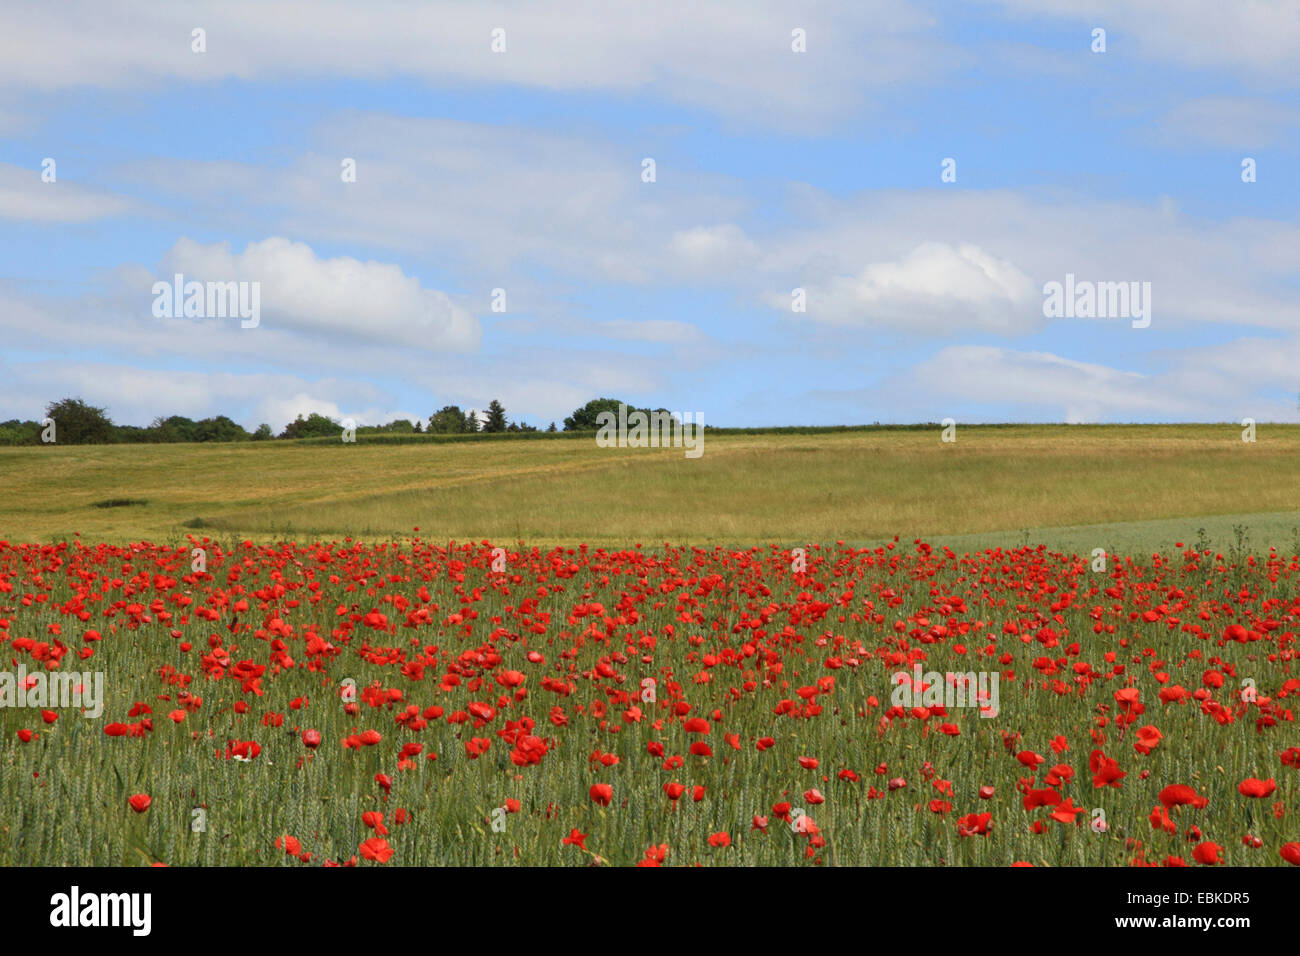 Common poppy, Corn poppy, Red poppy (Papaver rhoeas), cornfield with blooming poppy, Germany - Stock Image